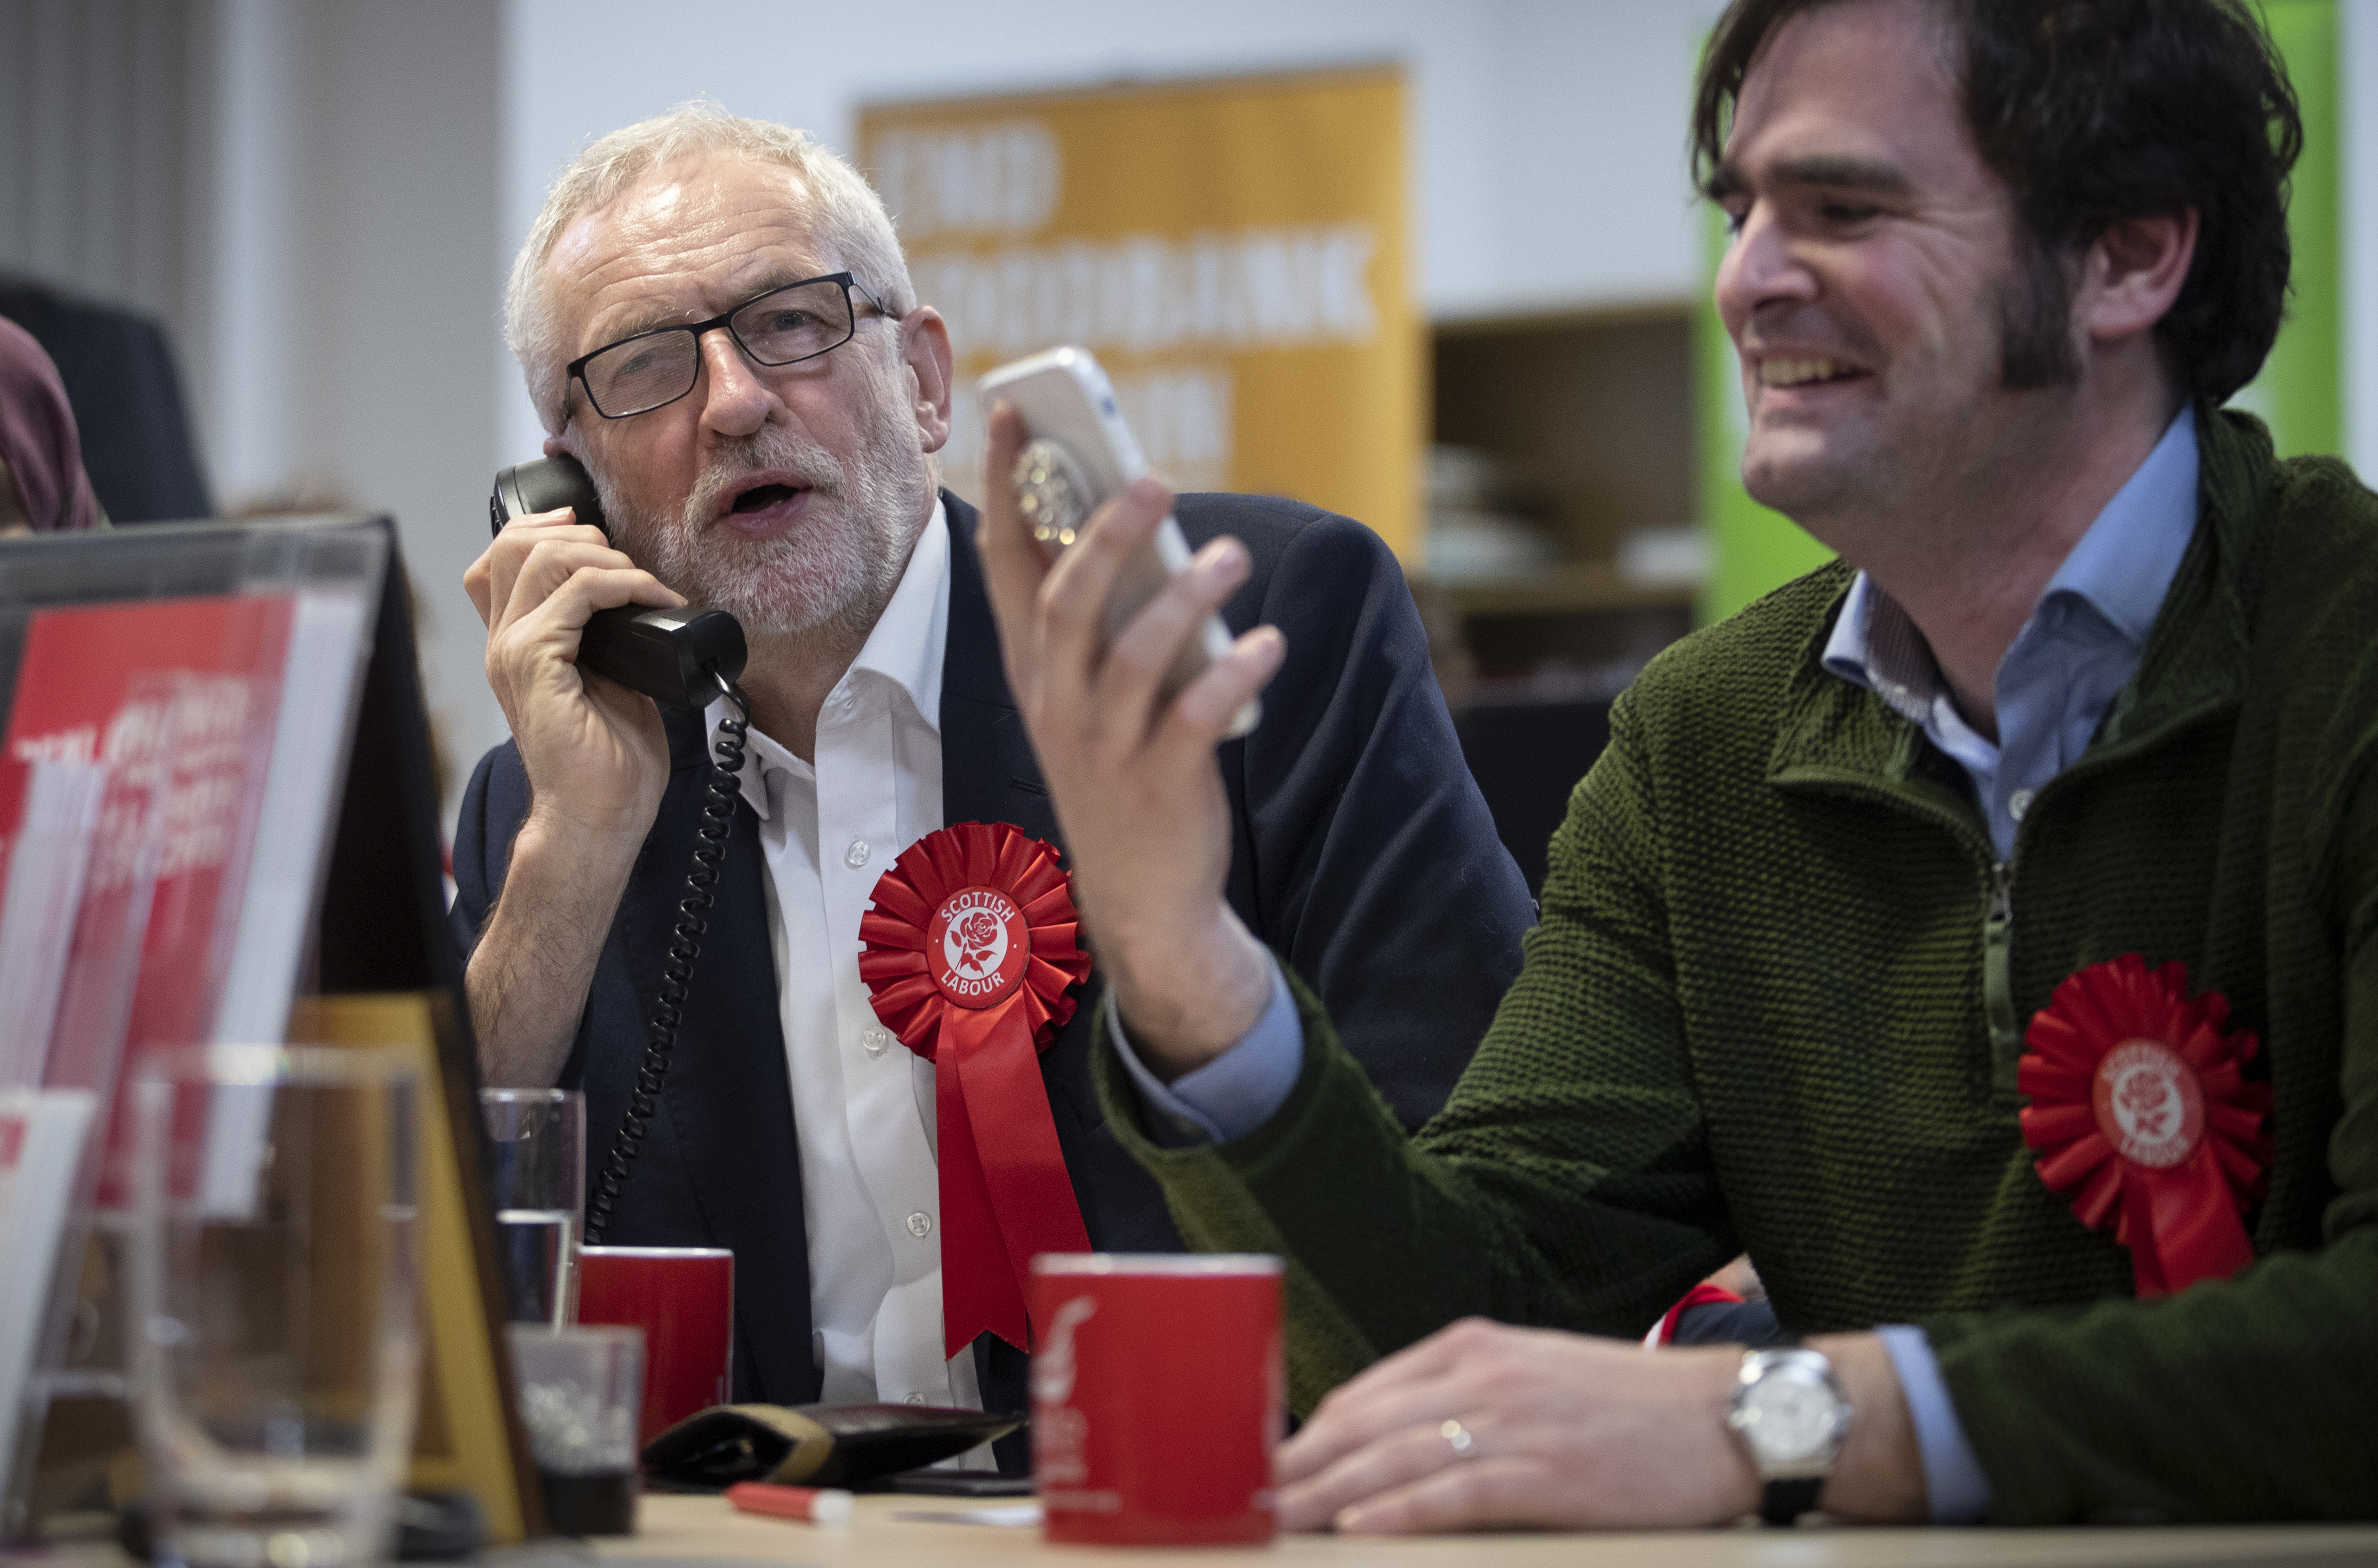 Labour leader Jeremy Corbyn joins a phone banking session with party activists at the Scottish Labour Party headquarters in Glasgow, while on the General Election campaign trail.